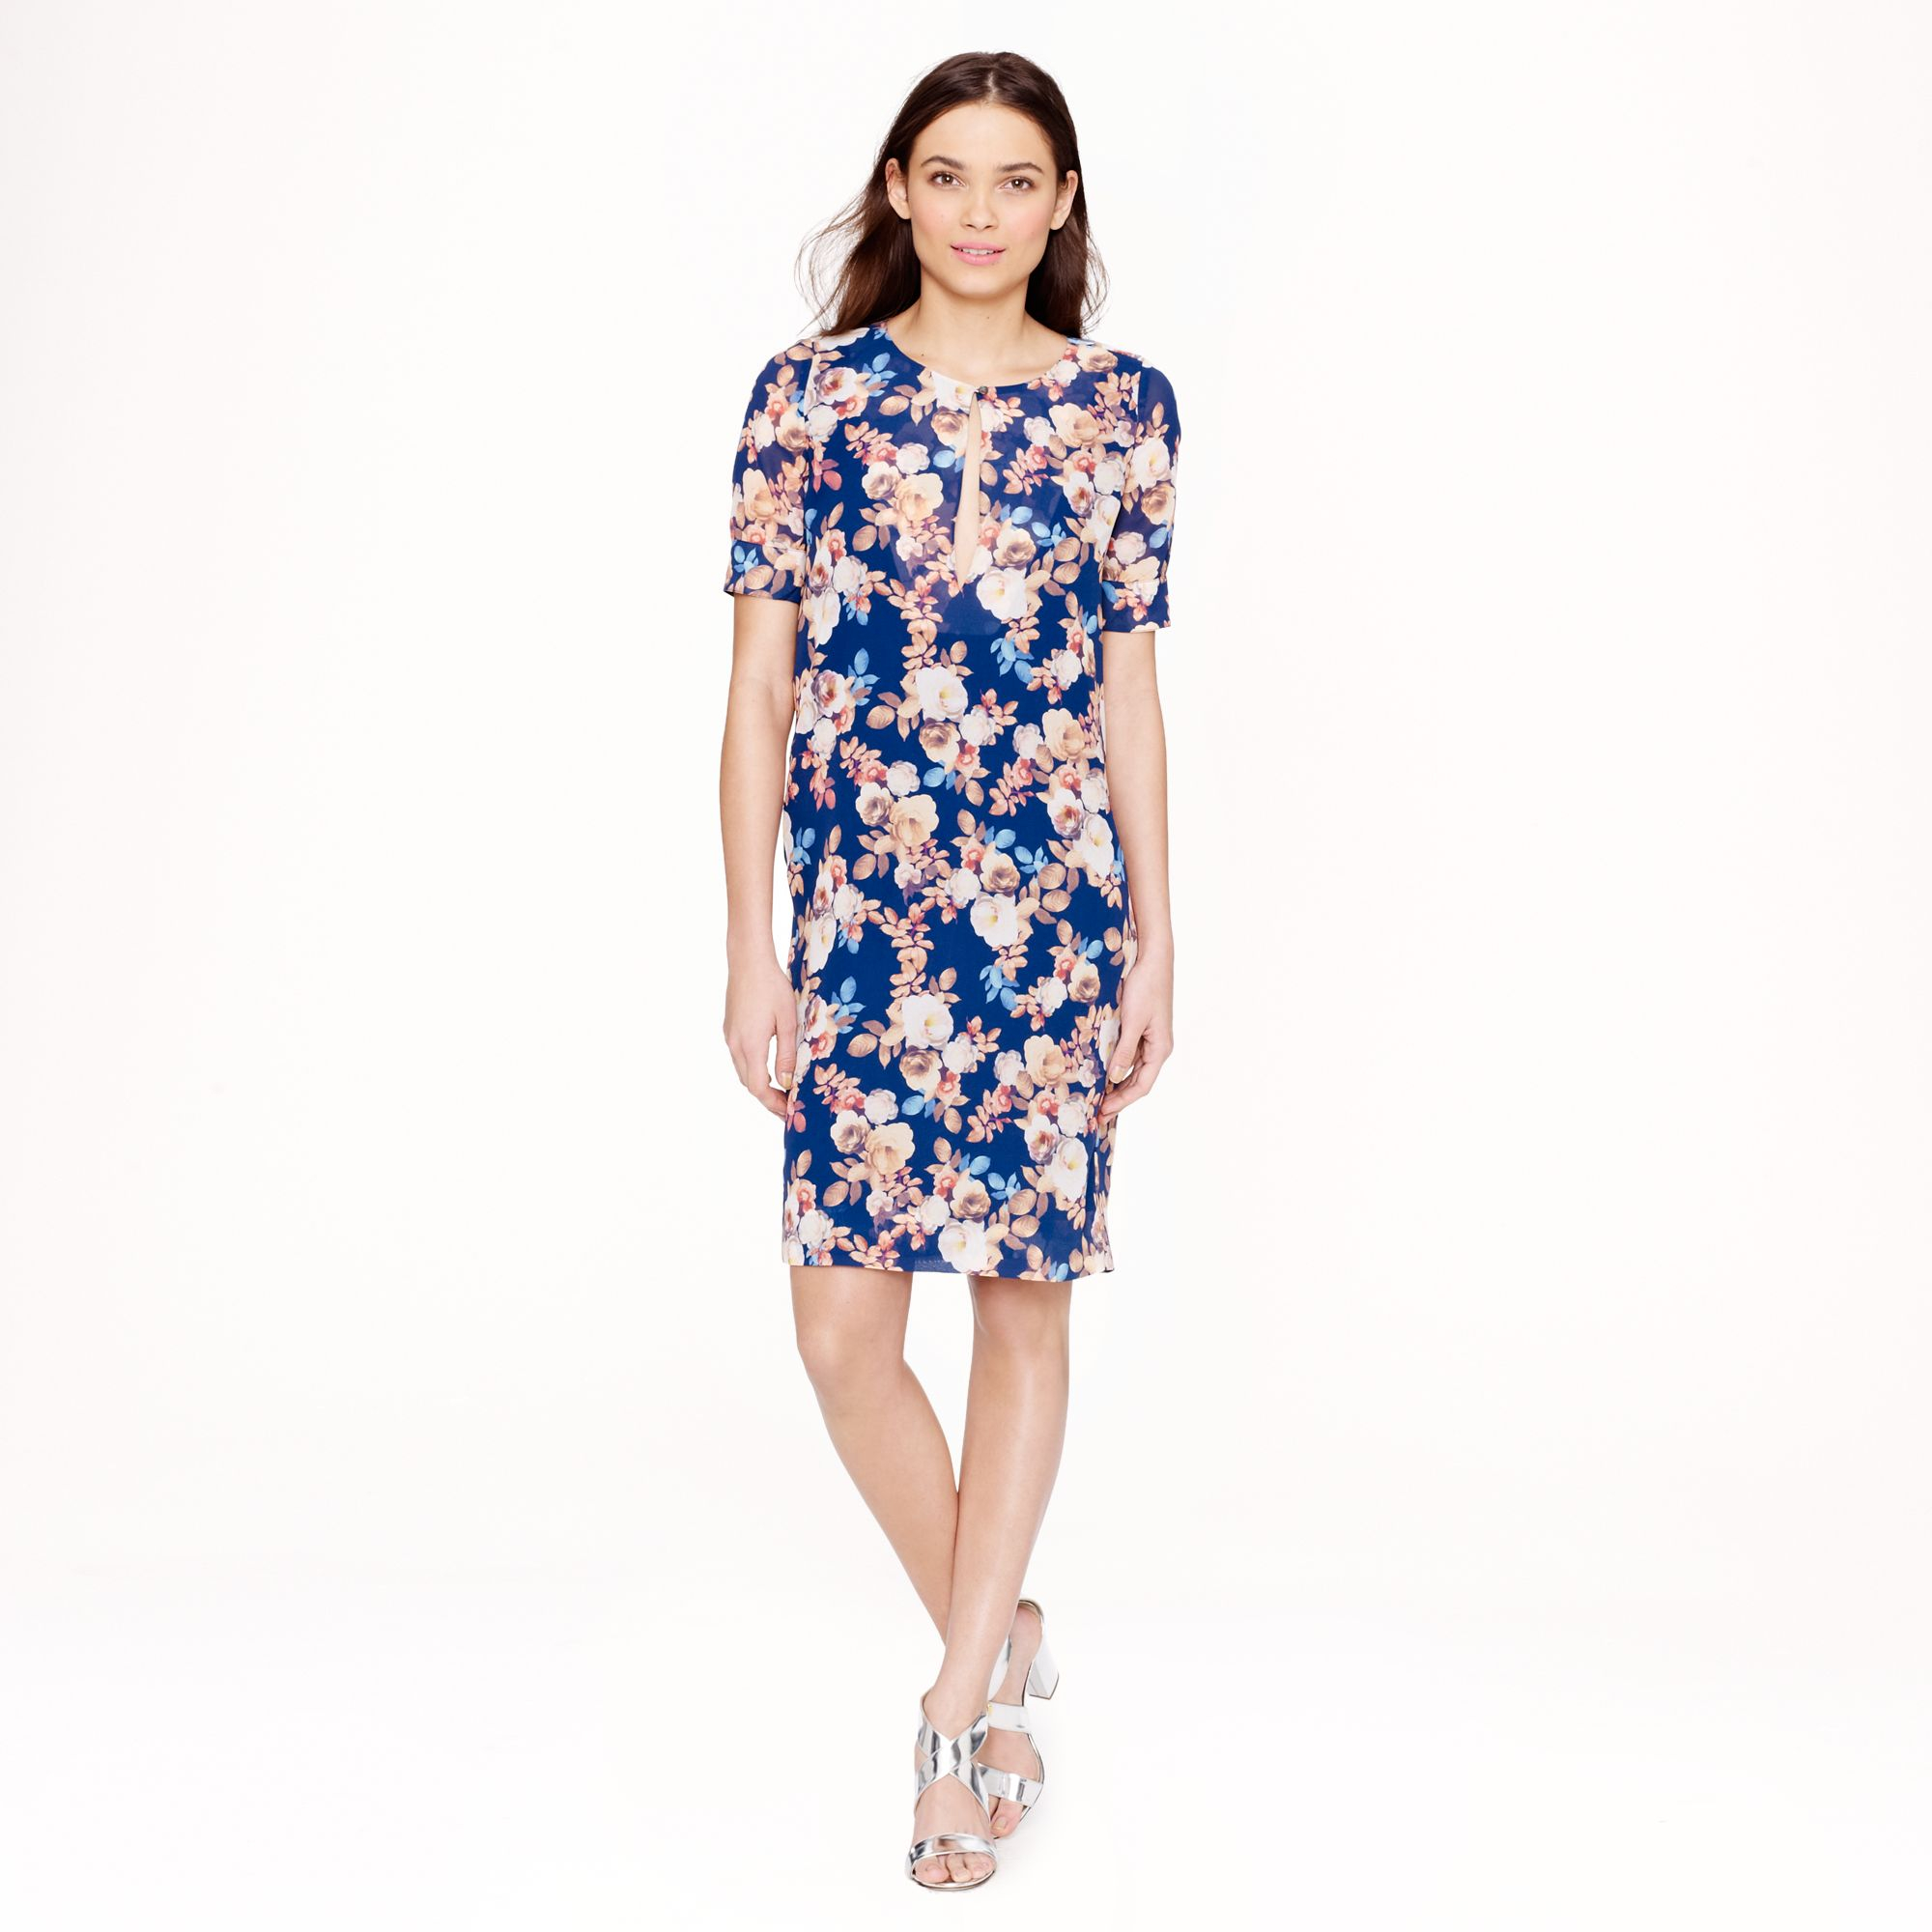 J.crew Petite Silk Dress in Antique Floral in Blue ...